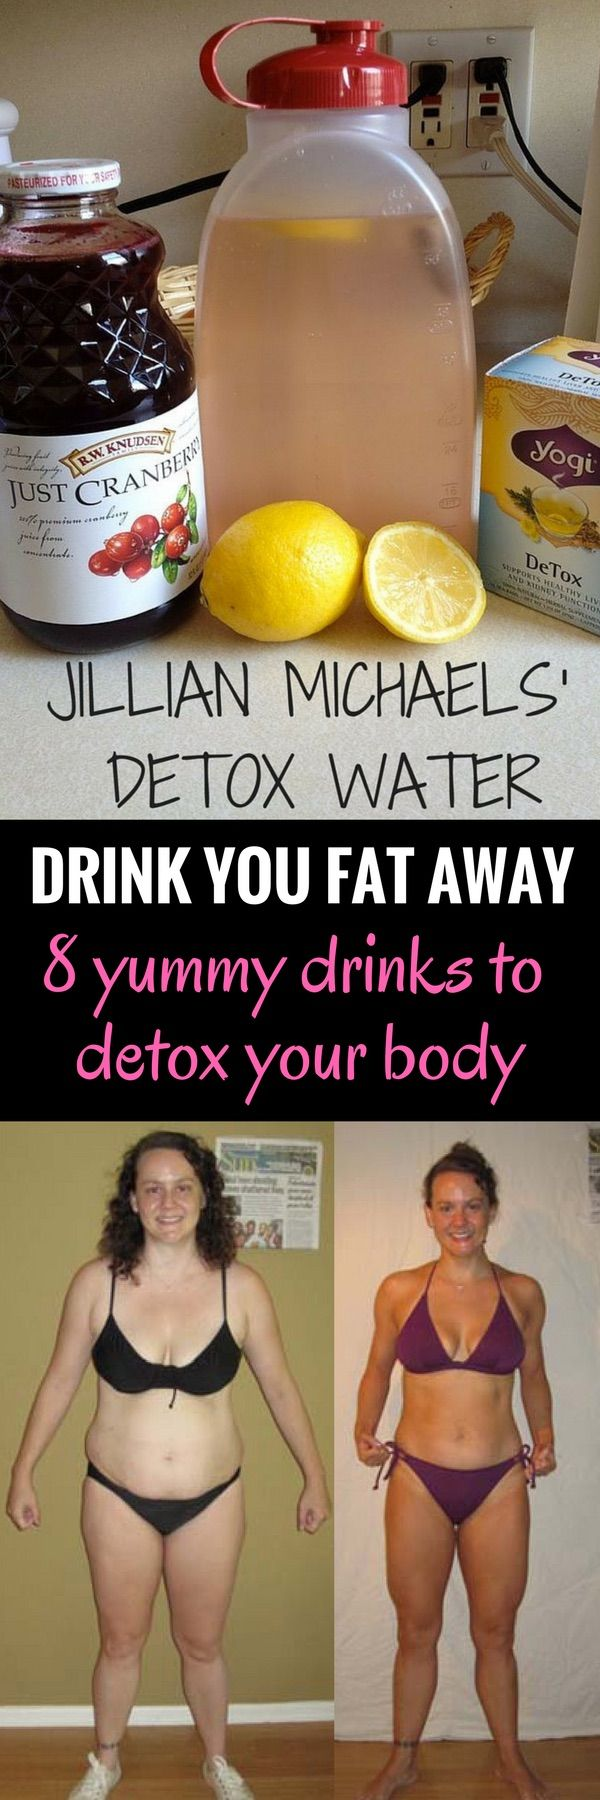 diet drinks to lose weight